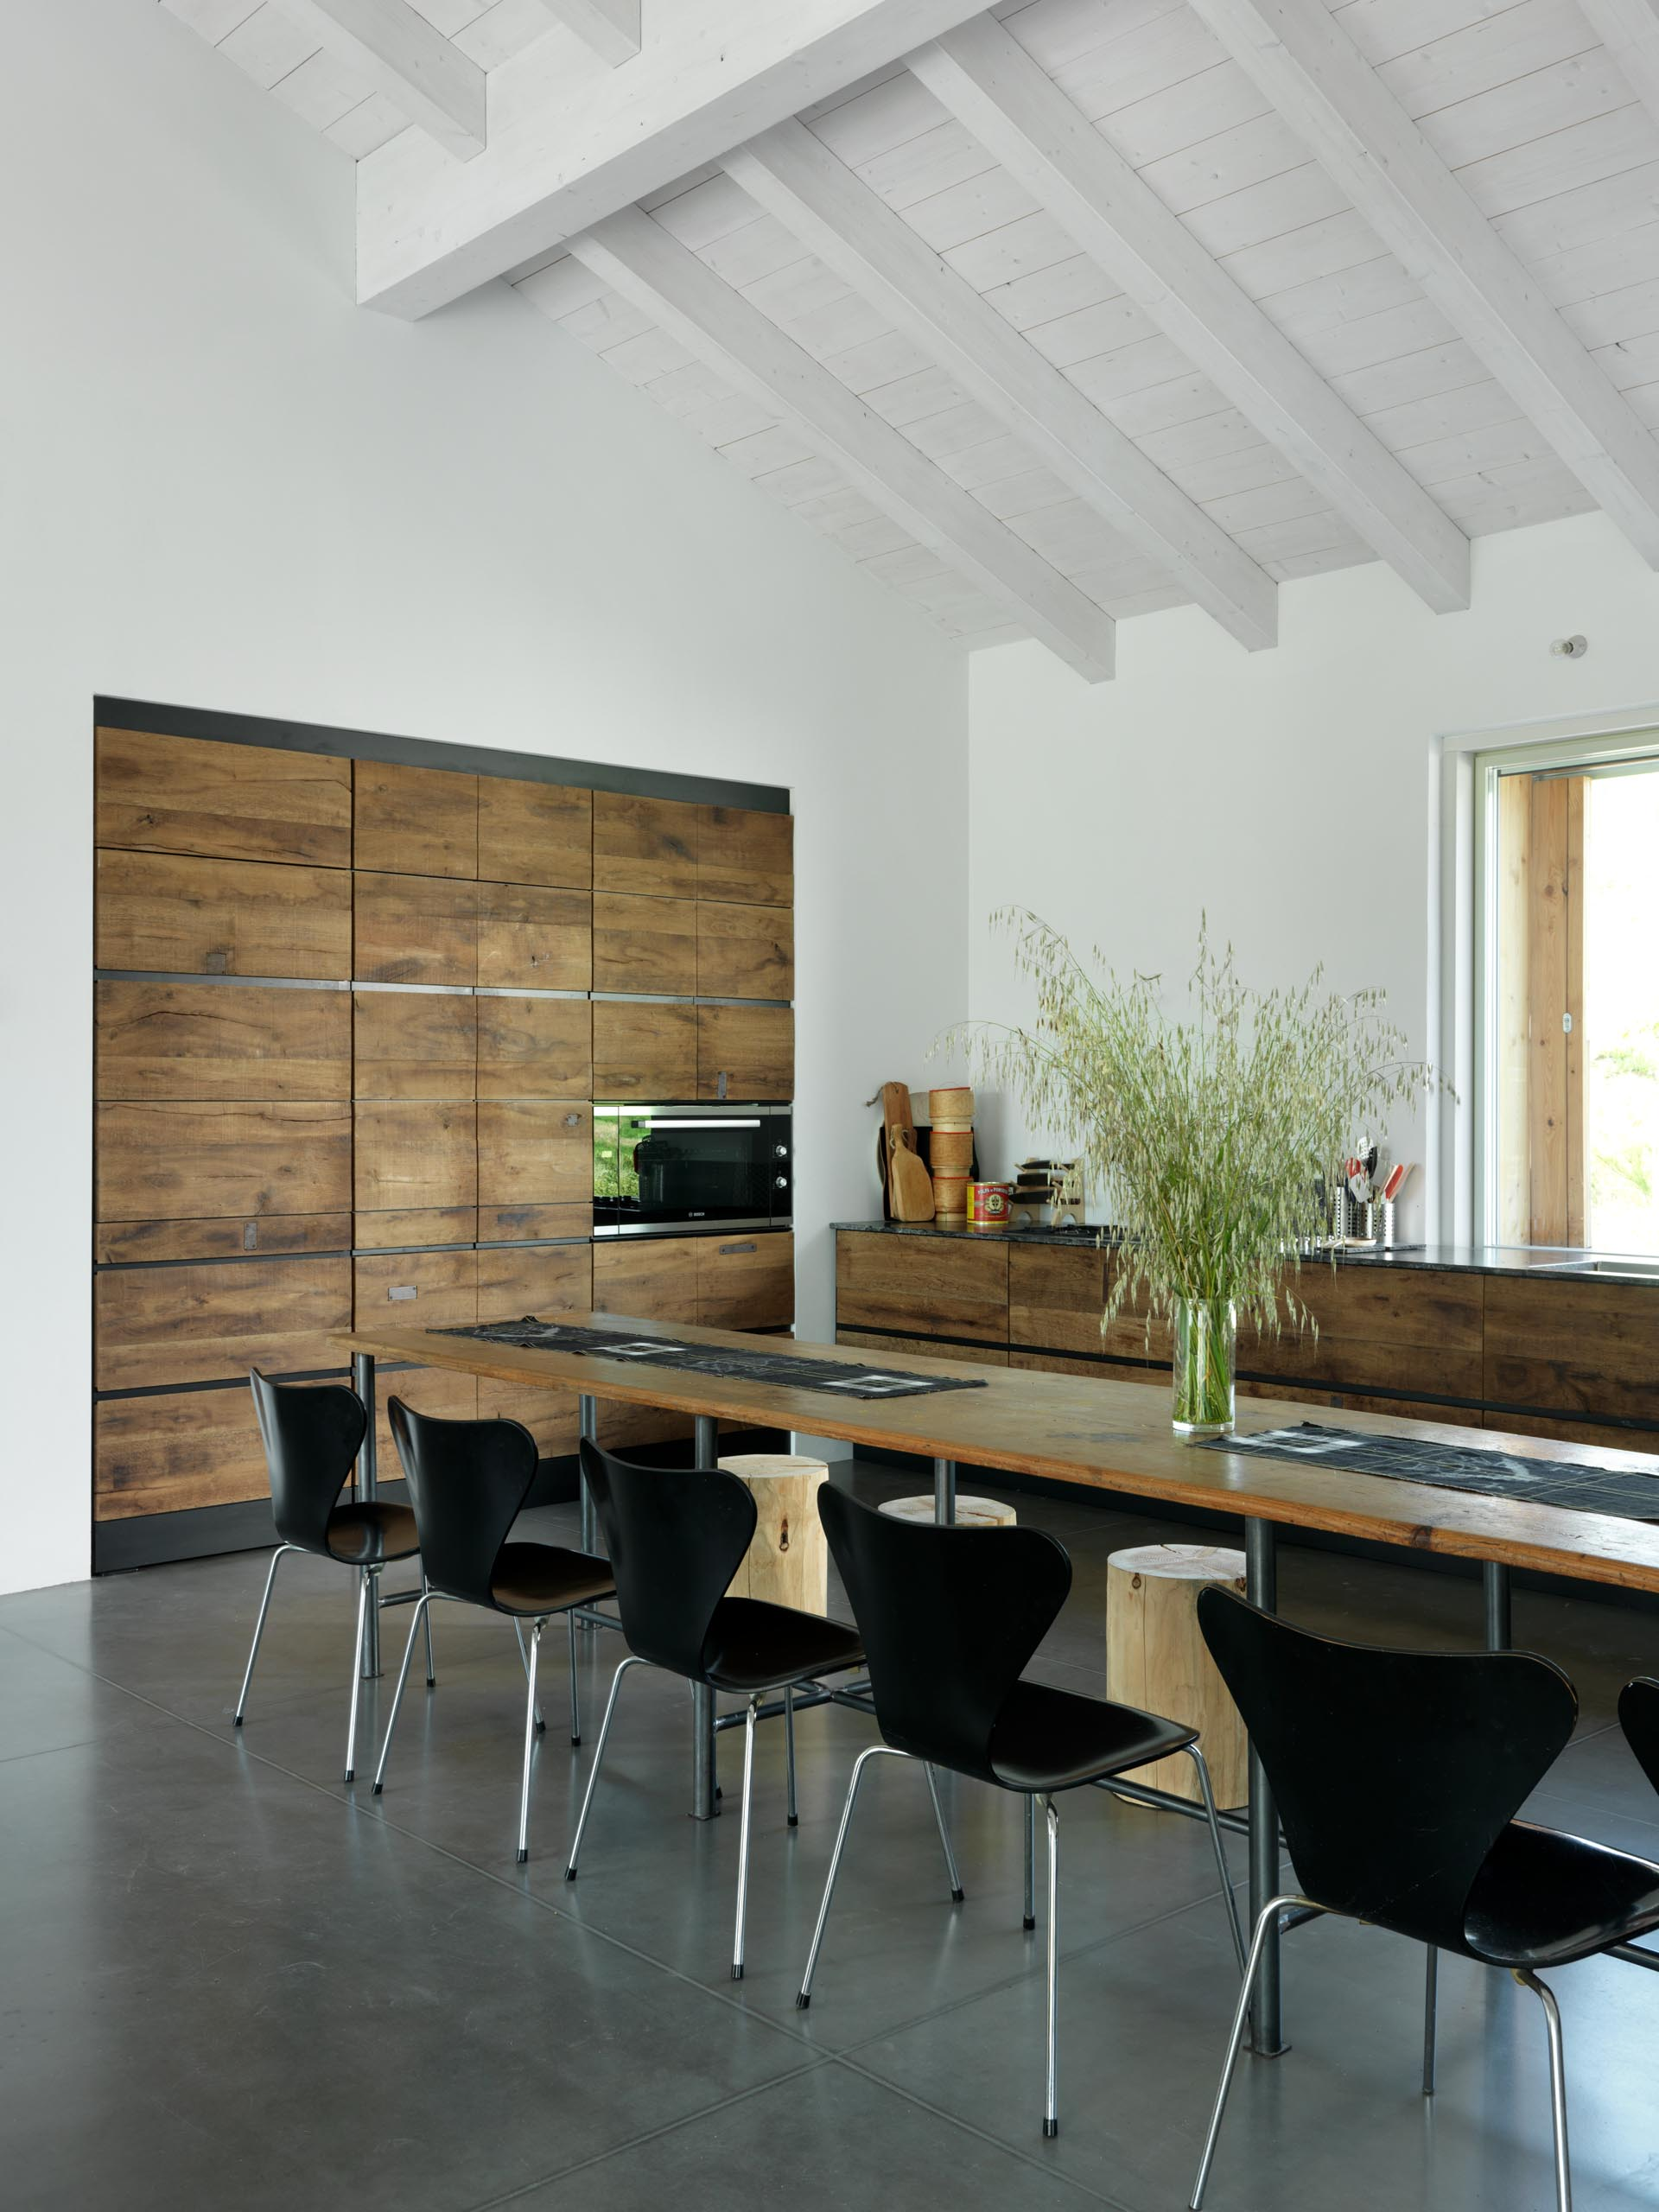 The custom made kitchen in this modern home has been achieved by using reclaimed wood, adding to the farmhouse aesthetic.